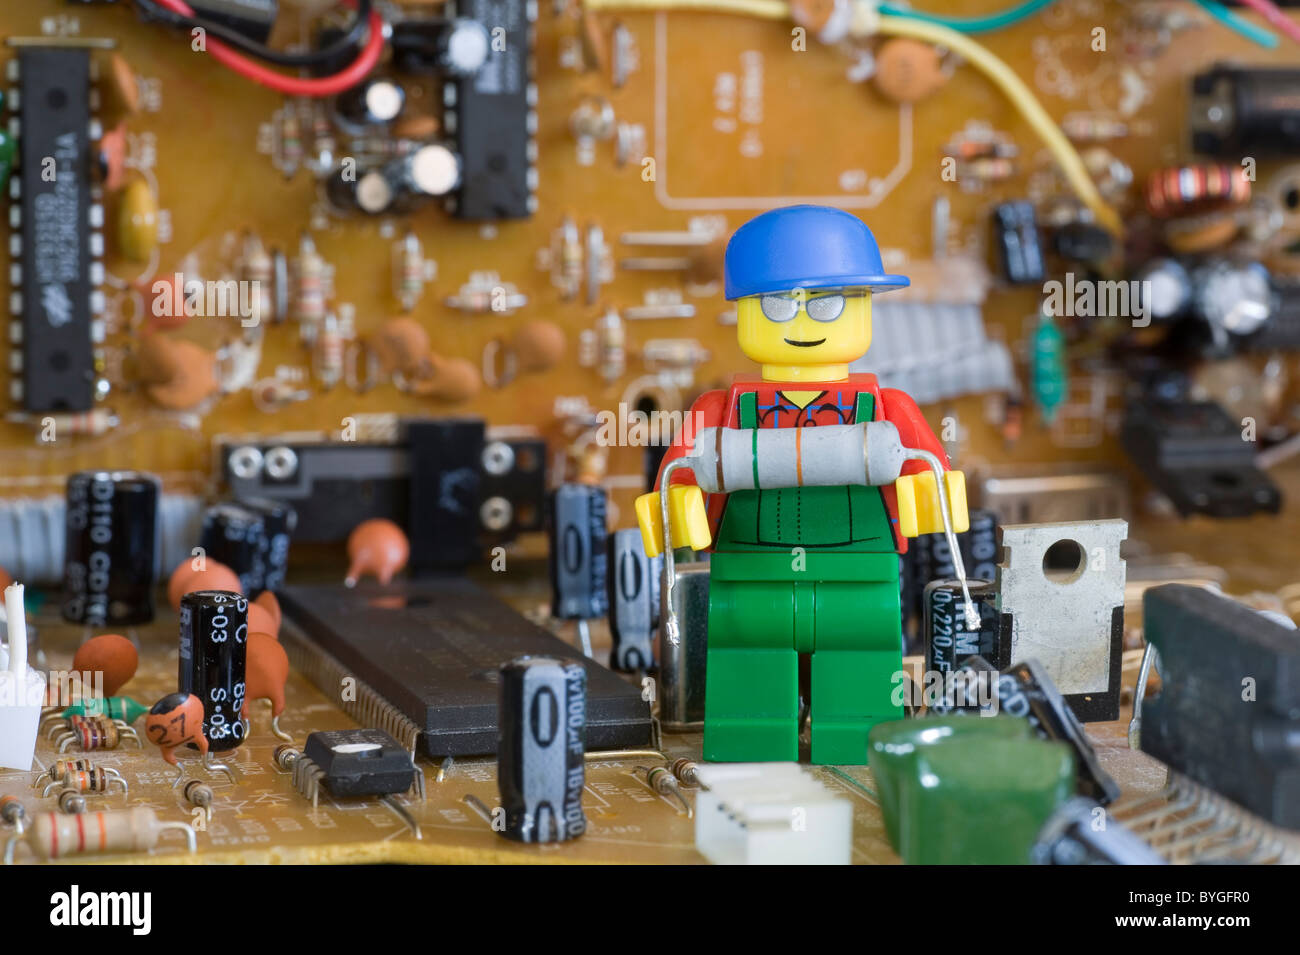 lego engineer on an electronic circuit board holding an electronic